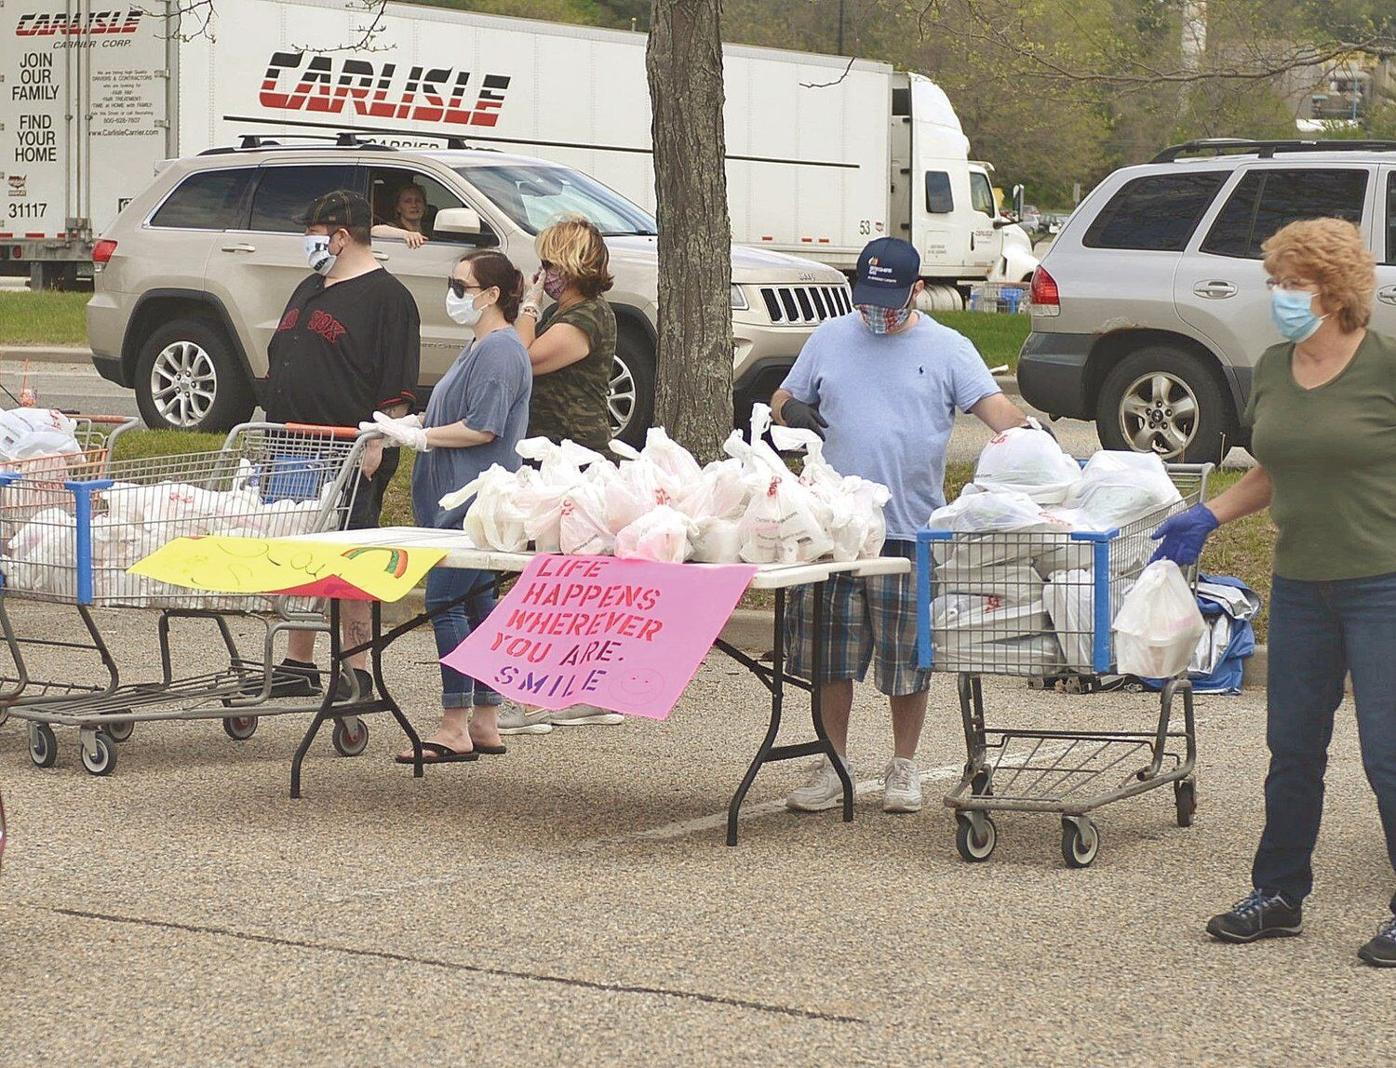 Pittsfield steelworkers union hands out meals to those in need